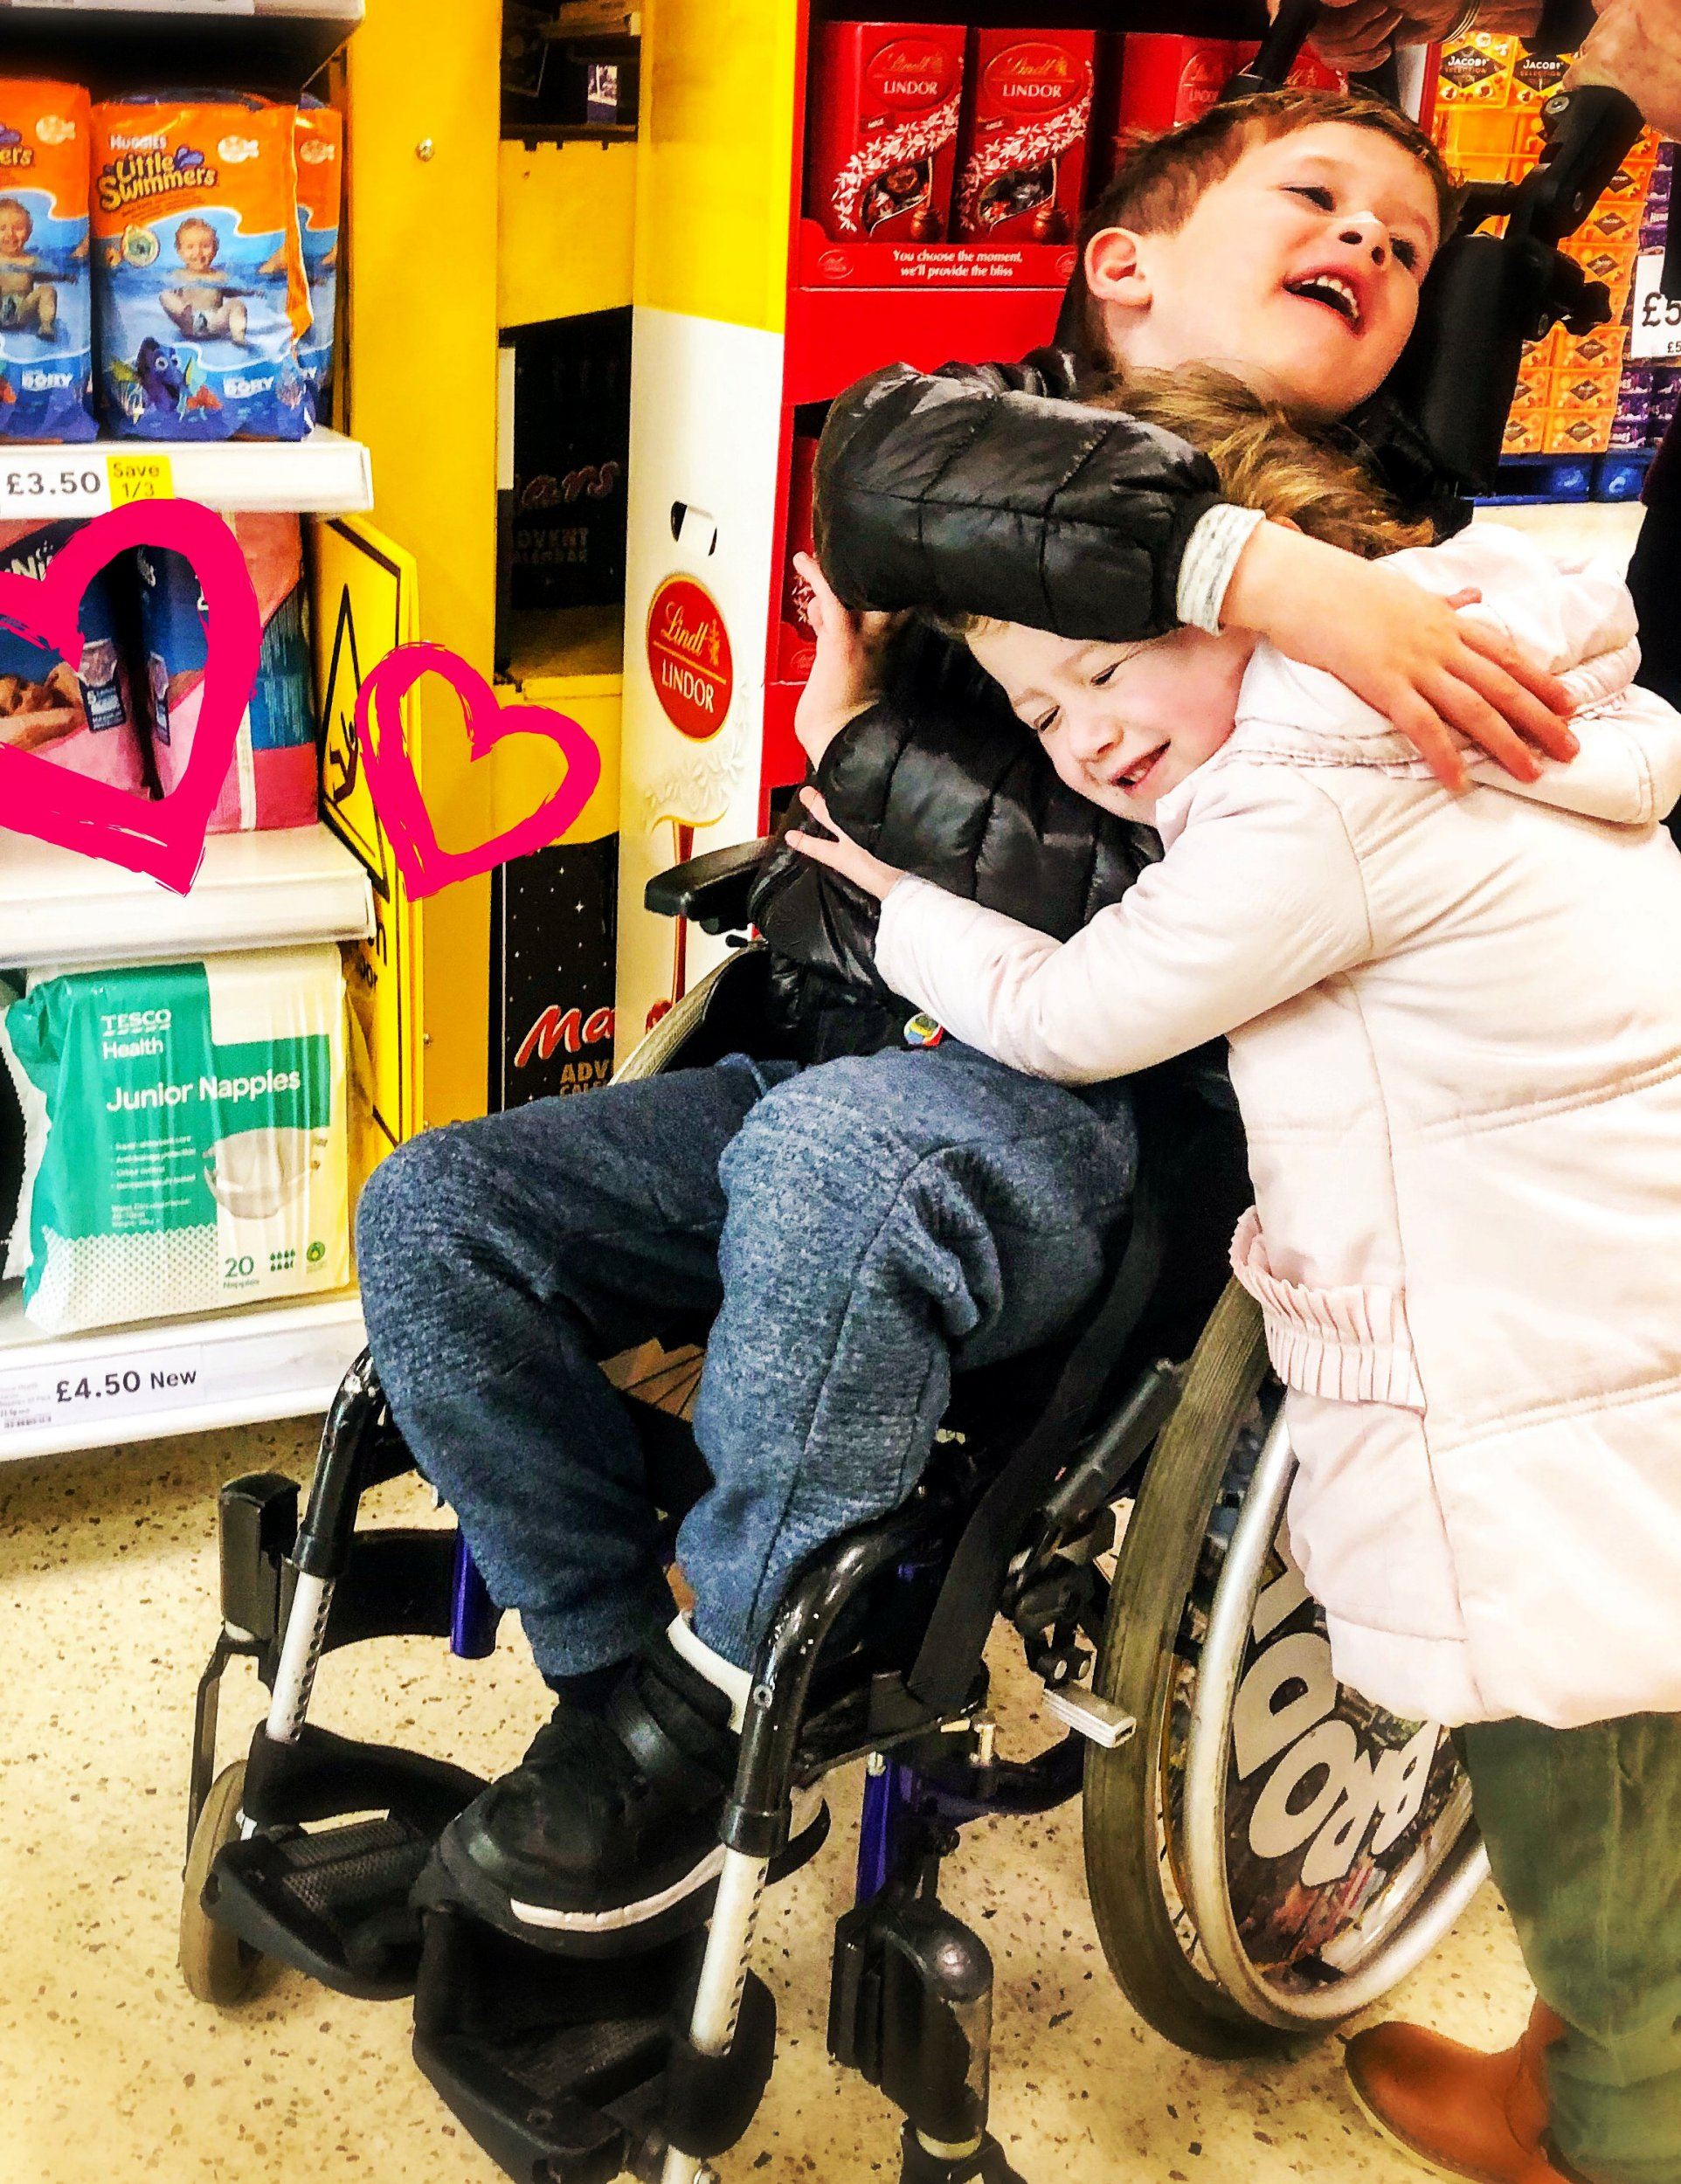 Brody Rutherford from Bonnybridge, Falkirk, with his younger sister Sydney at a Tesco store beside the nappies for old children. See SWSCnappy. A mother with a disabled son has spoken of her pride after Tesco became the first UK supermarket to begin selling nappies for older children in response to her campaign. Laura Rutherford's six-year-old son Brody - who has a rare genetic condition, autism and epilepsy - is not toilet trained and outgrew regular infant nappies when he was four. The family, from Bonnybridge, Falkirk had to use size six nappies - suitable for 15-16 month old infants - until Laura was forced to buy expensive specialist nappies online. Taking the situation into her own hands, Laura started up a Change.org petition, which garnered over 18,500 signatures.